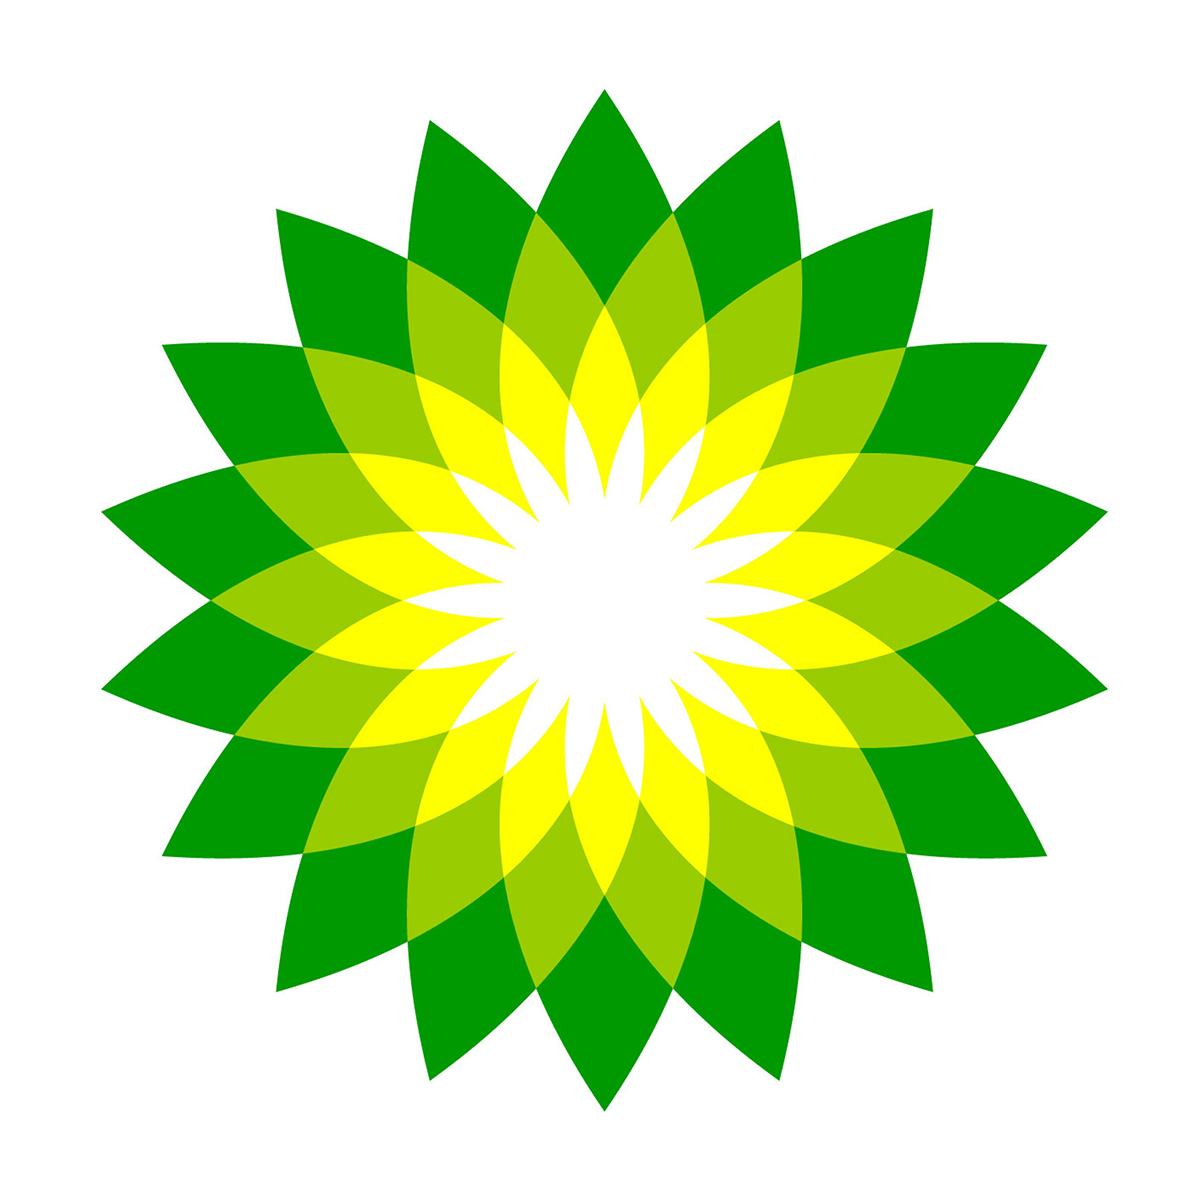 BP Logo  Design History and Evolution  Famous Logos